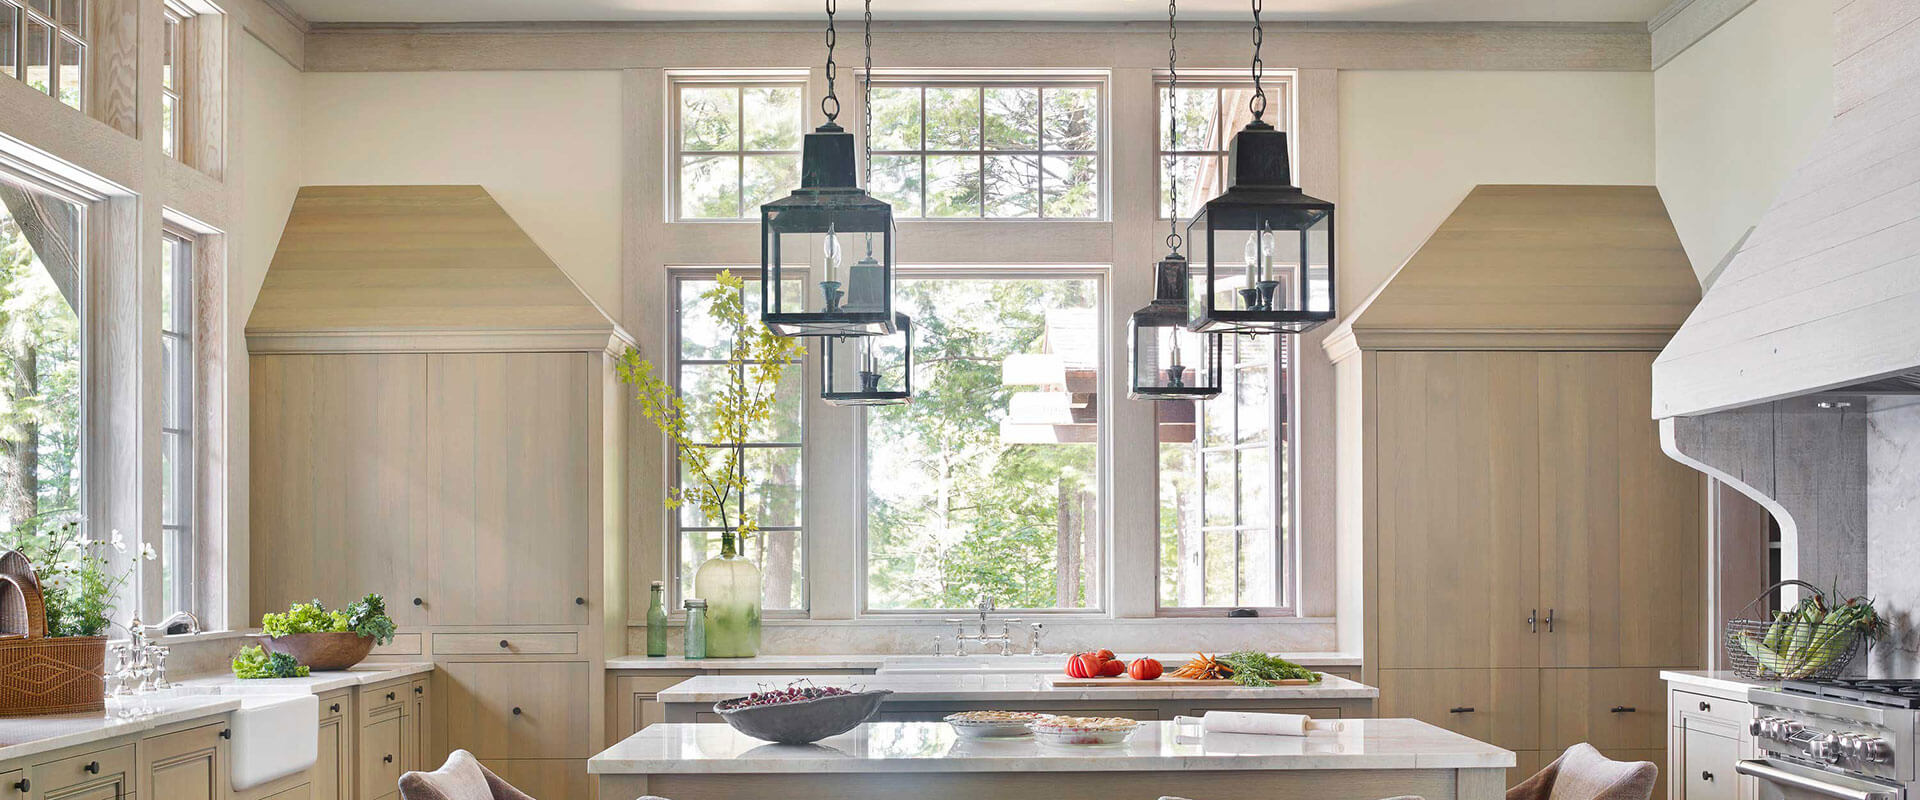 French casement windows photos houzz - Interior Home Kitchen Photo Of Ultra 3 Wide Crank Out Casement Open Window With